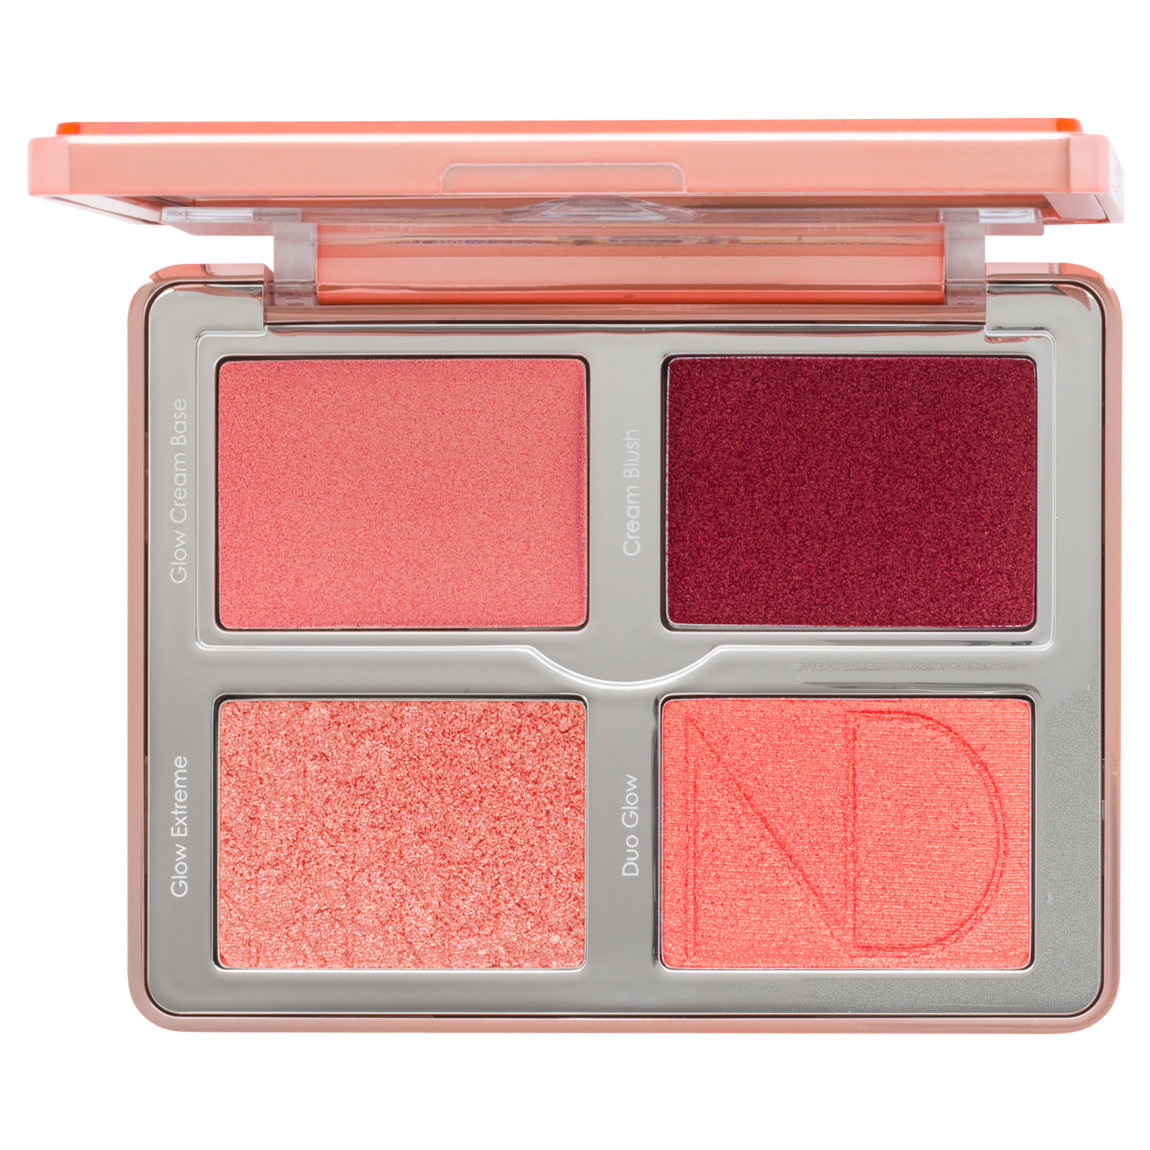 Natasha Denona Bloom Blush & Glow Palette product smear.